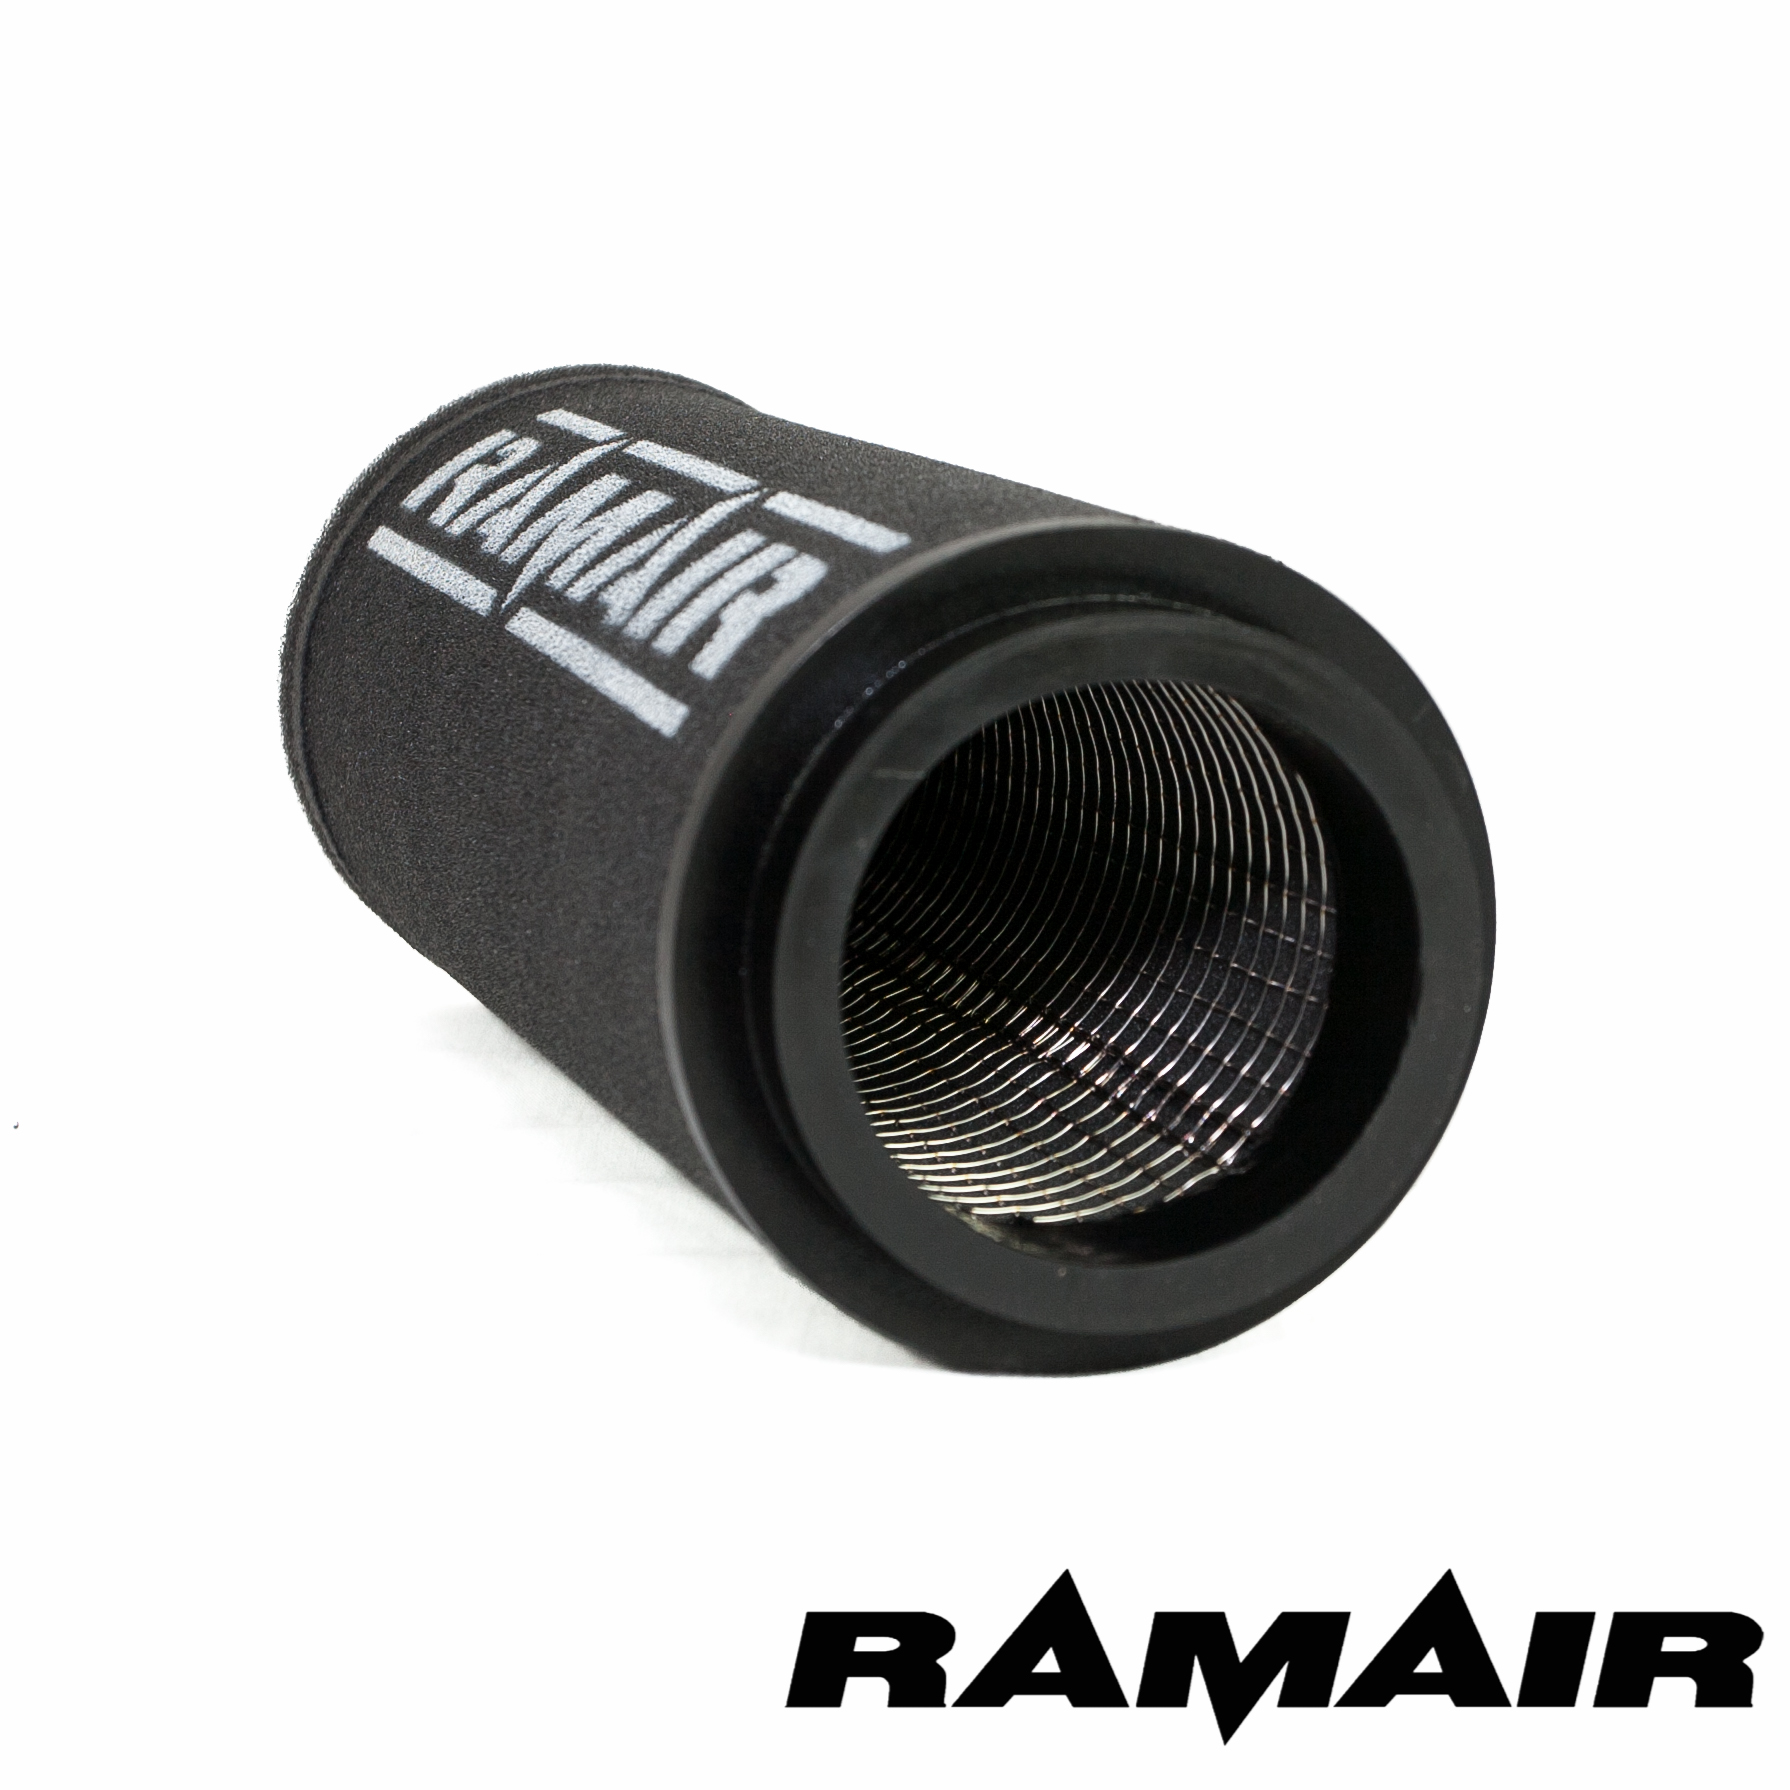 ramair replacement air filter intake upgrade tvr griffith chimaera 200 400 v8 ebay. Black Bedroom Furniture Sets. Home Design Ideas